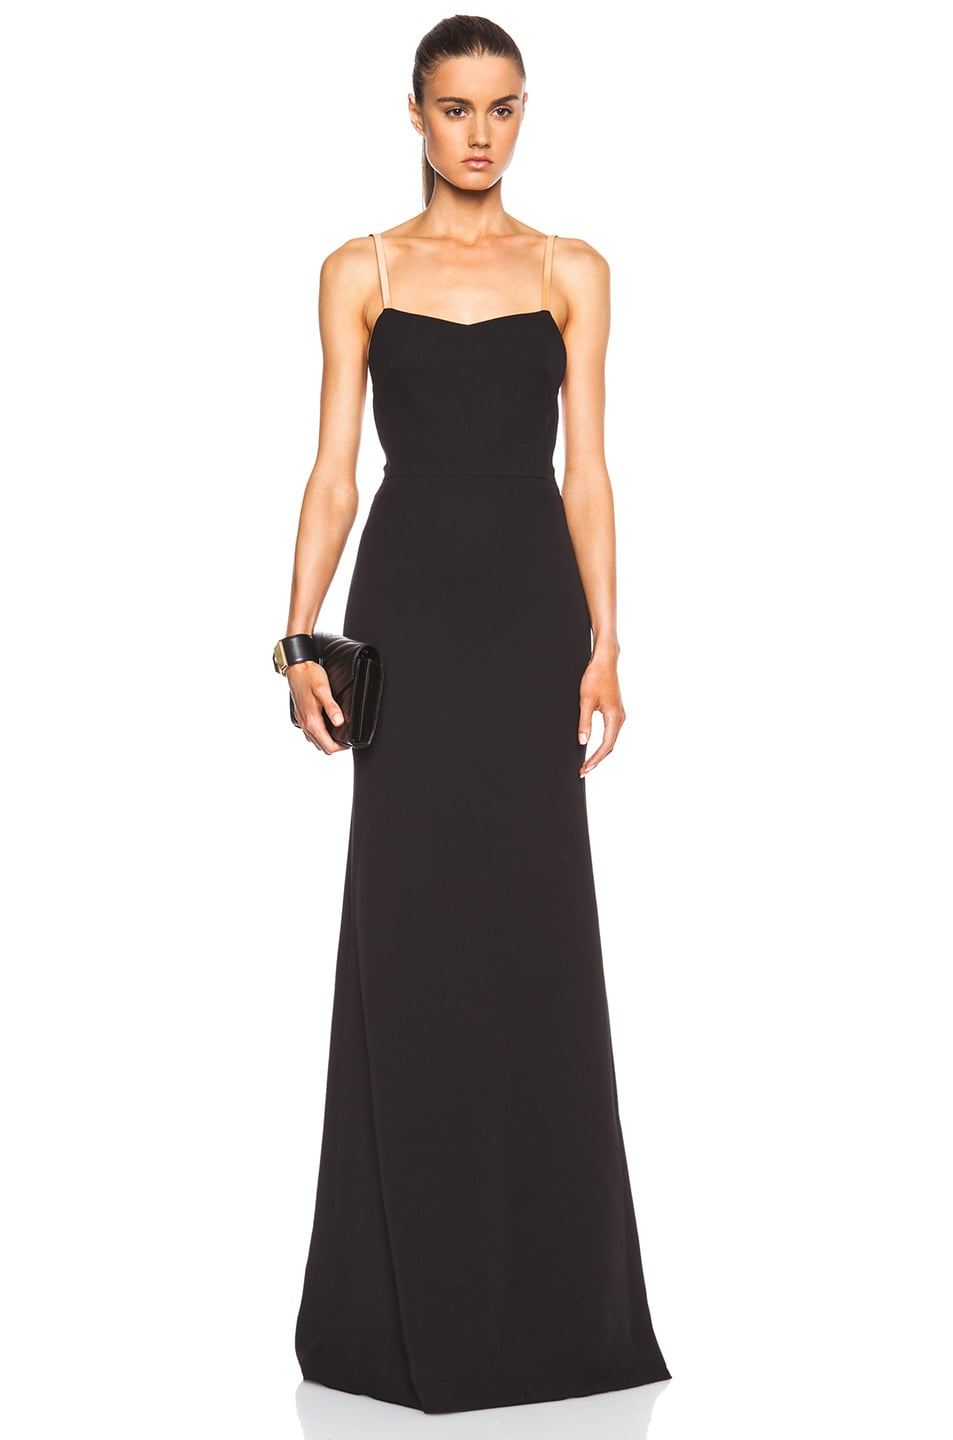 Image 1 of Victoria Beckham Cami Floor Length Gown in Nude & Pom Pom Black